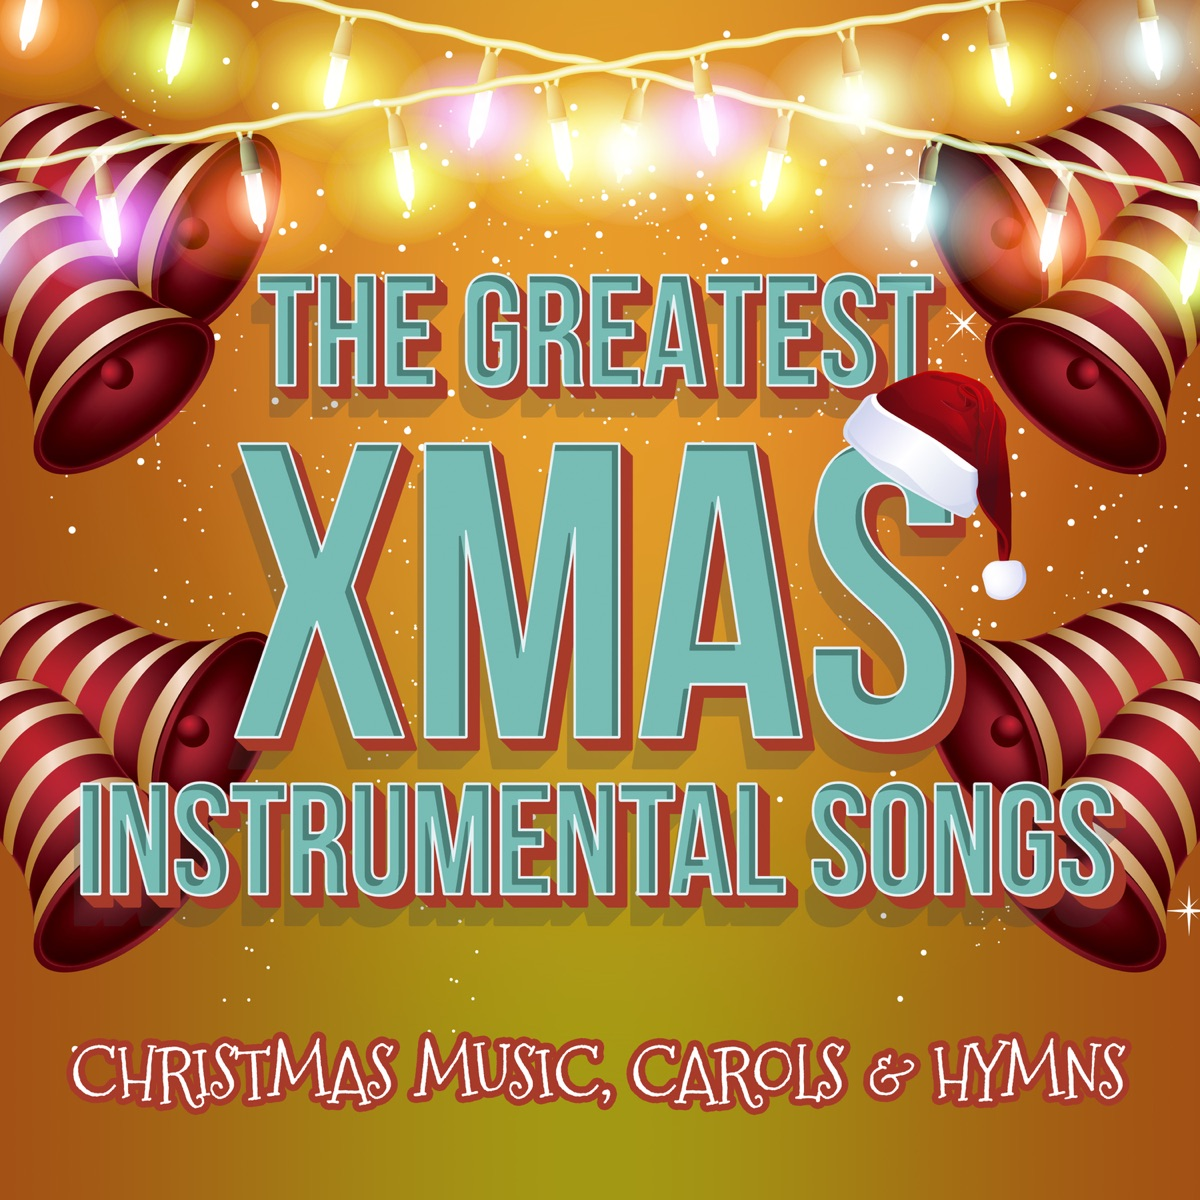 Instrumental Christmas Music.The Greatest Xmas Instrumental Songs Christmas Music